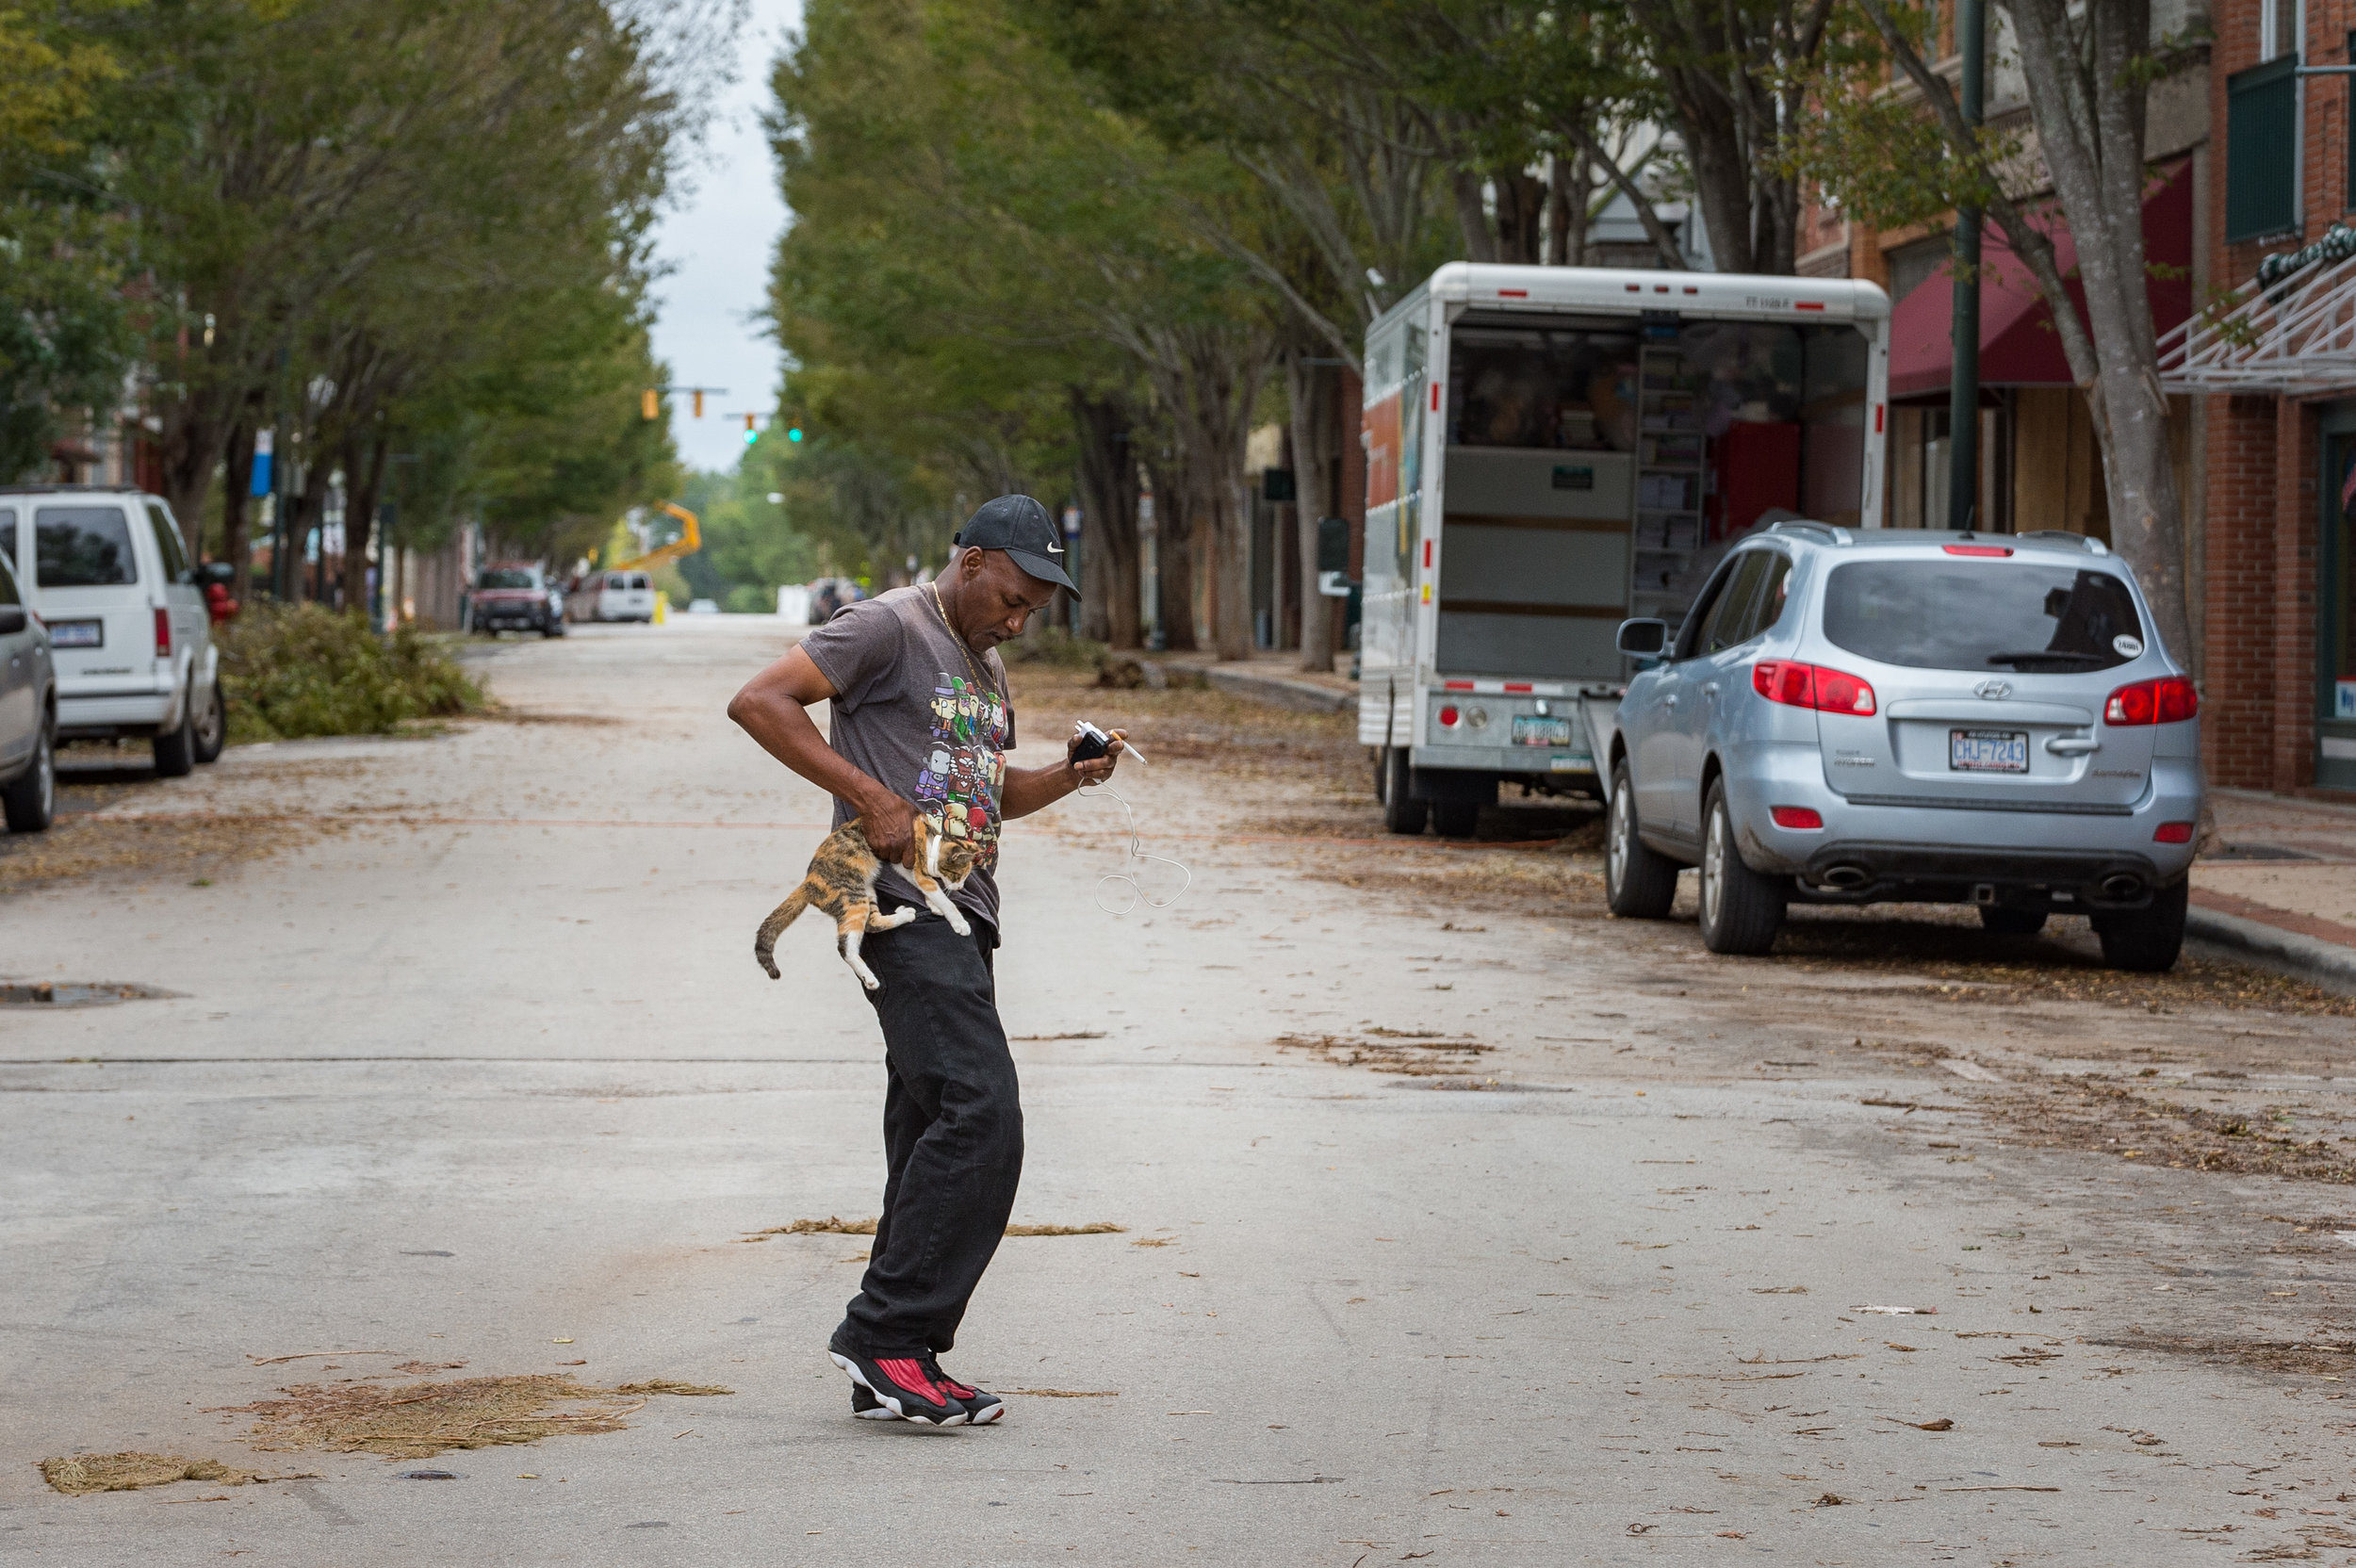 September 16, 2018, New Bern, NC- After flood waters receded in New Bern, a man is seen walking in the downtown area with his kitten.